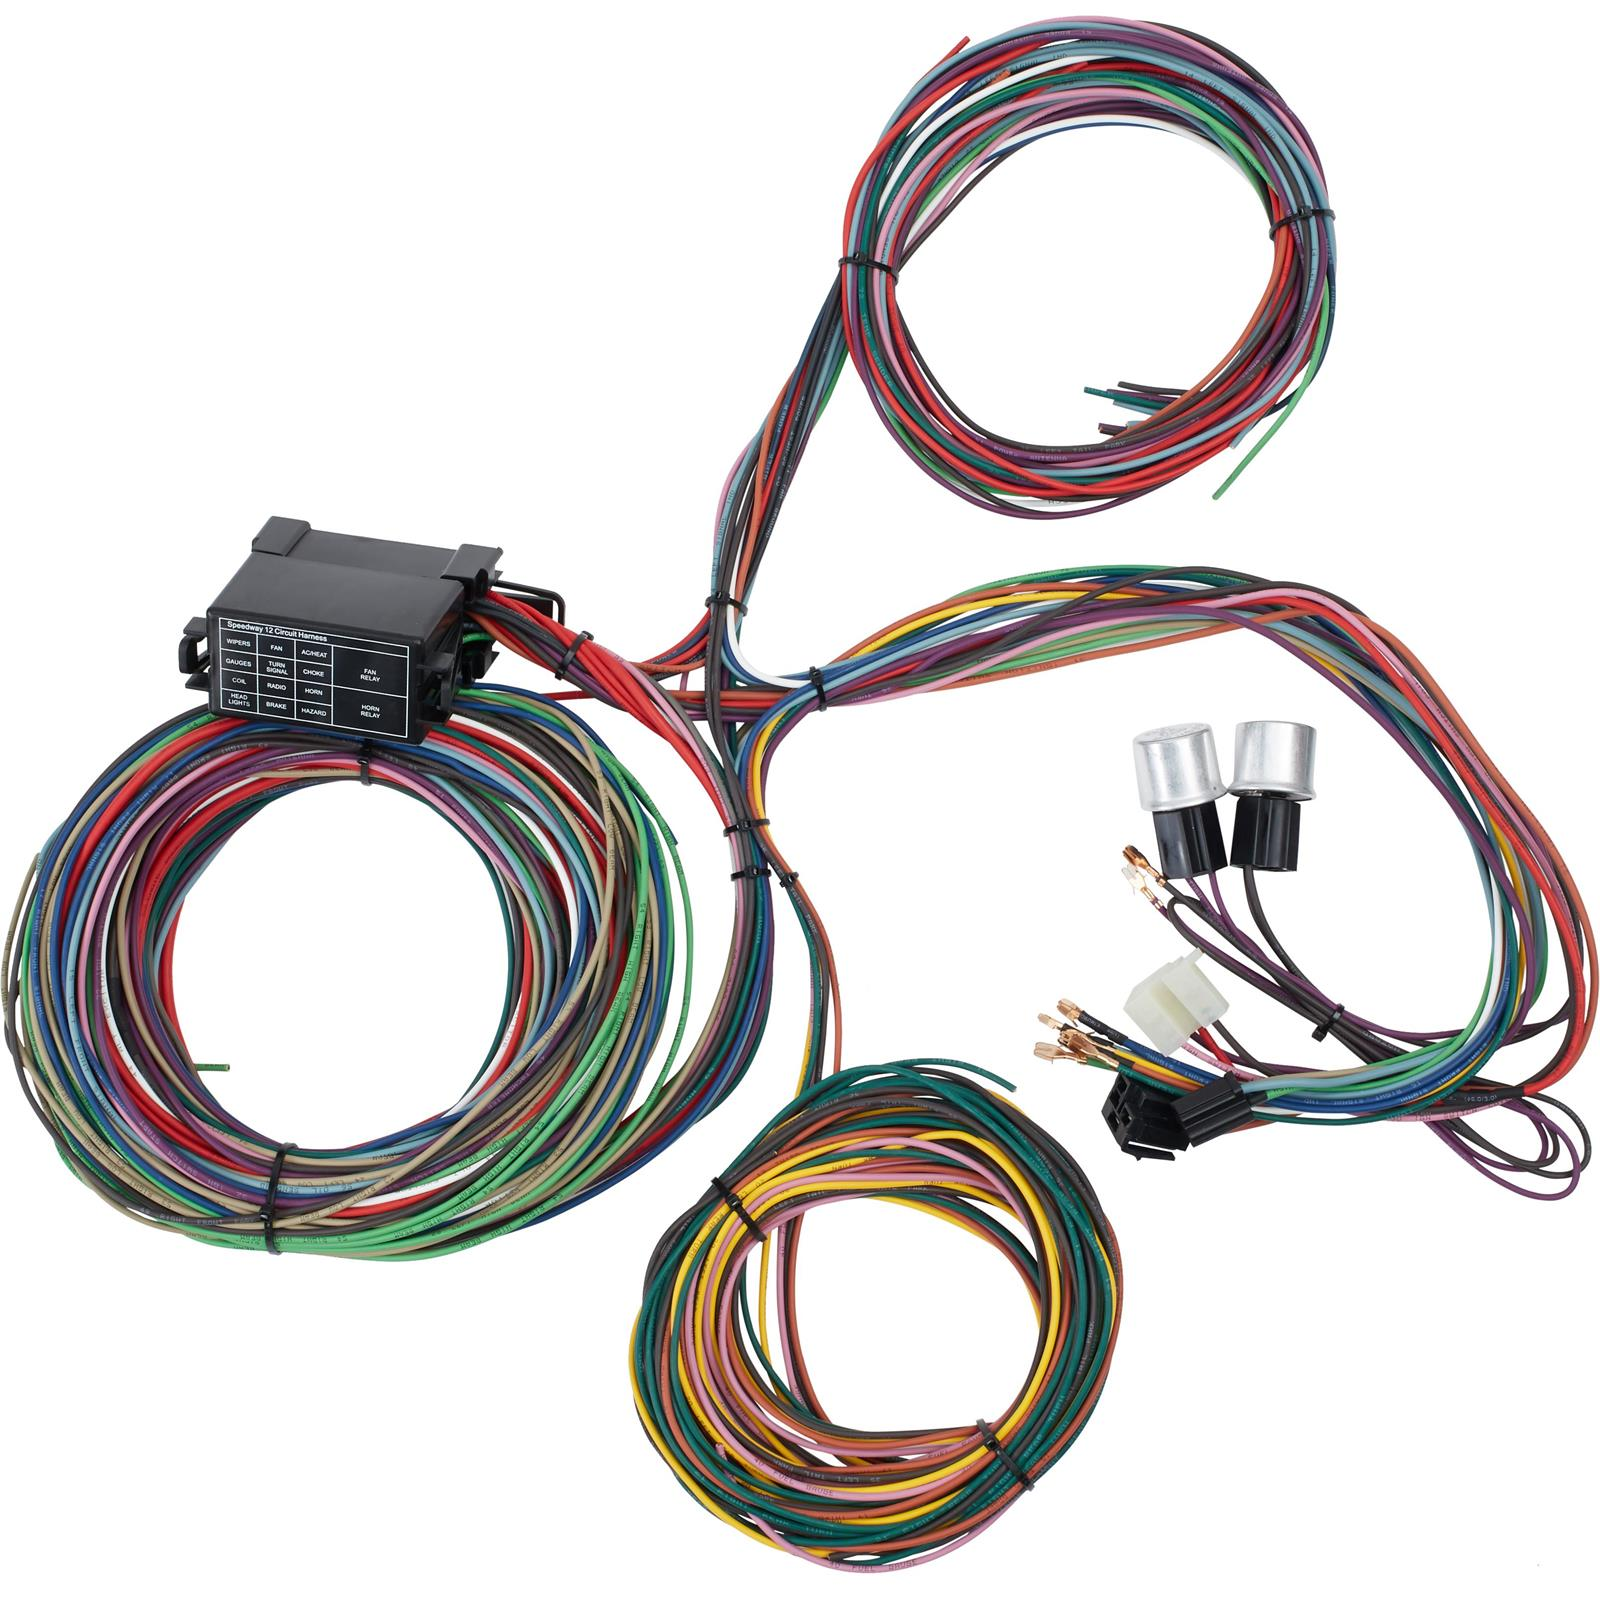 Electrical Wiring Harness - Nice Place to Get Wiring Diagram on trailer manufacturers, glass manufacturers, safety harness manufacturers, body harness manufacturers, truck tool box manufacturers,